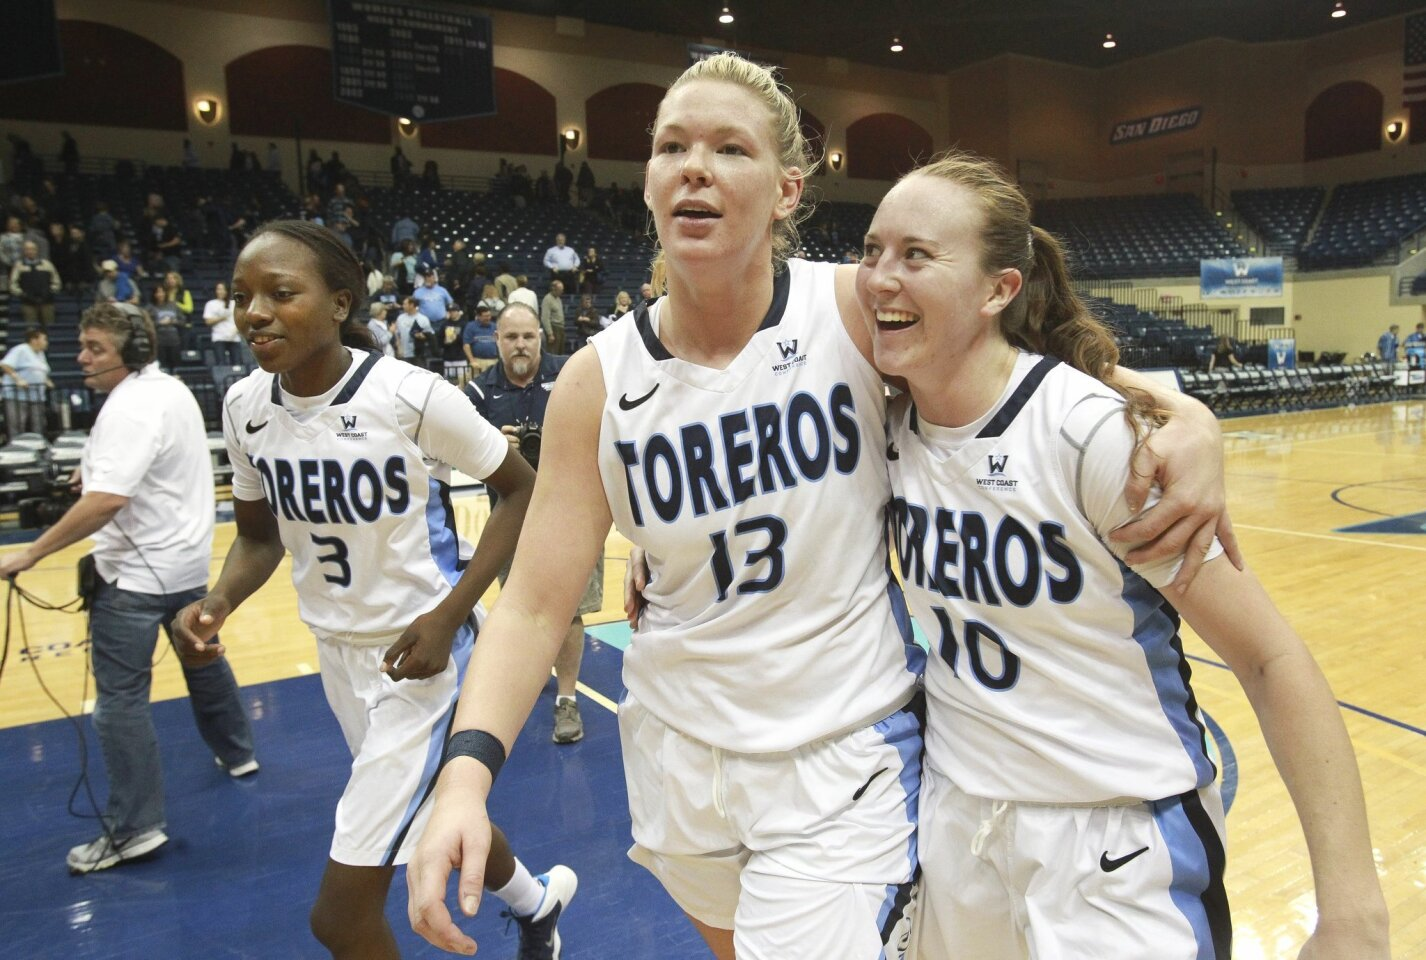 USD players, from left, Sophia Ederaine, Felicia Wijenberg, and Amy Kame leave the court after USD defeated St. Mary's 80-70 at the Jenny Craig Pavilion on January 2, 2014.